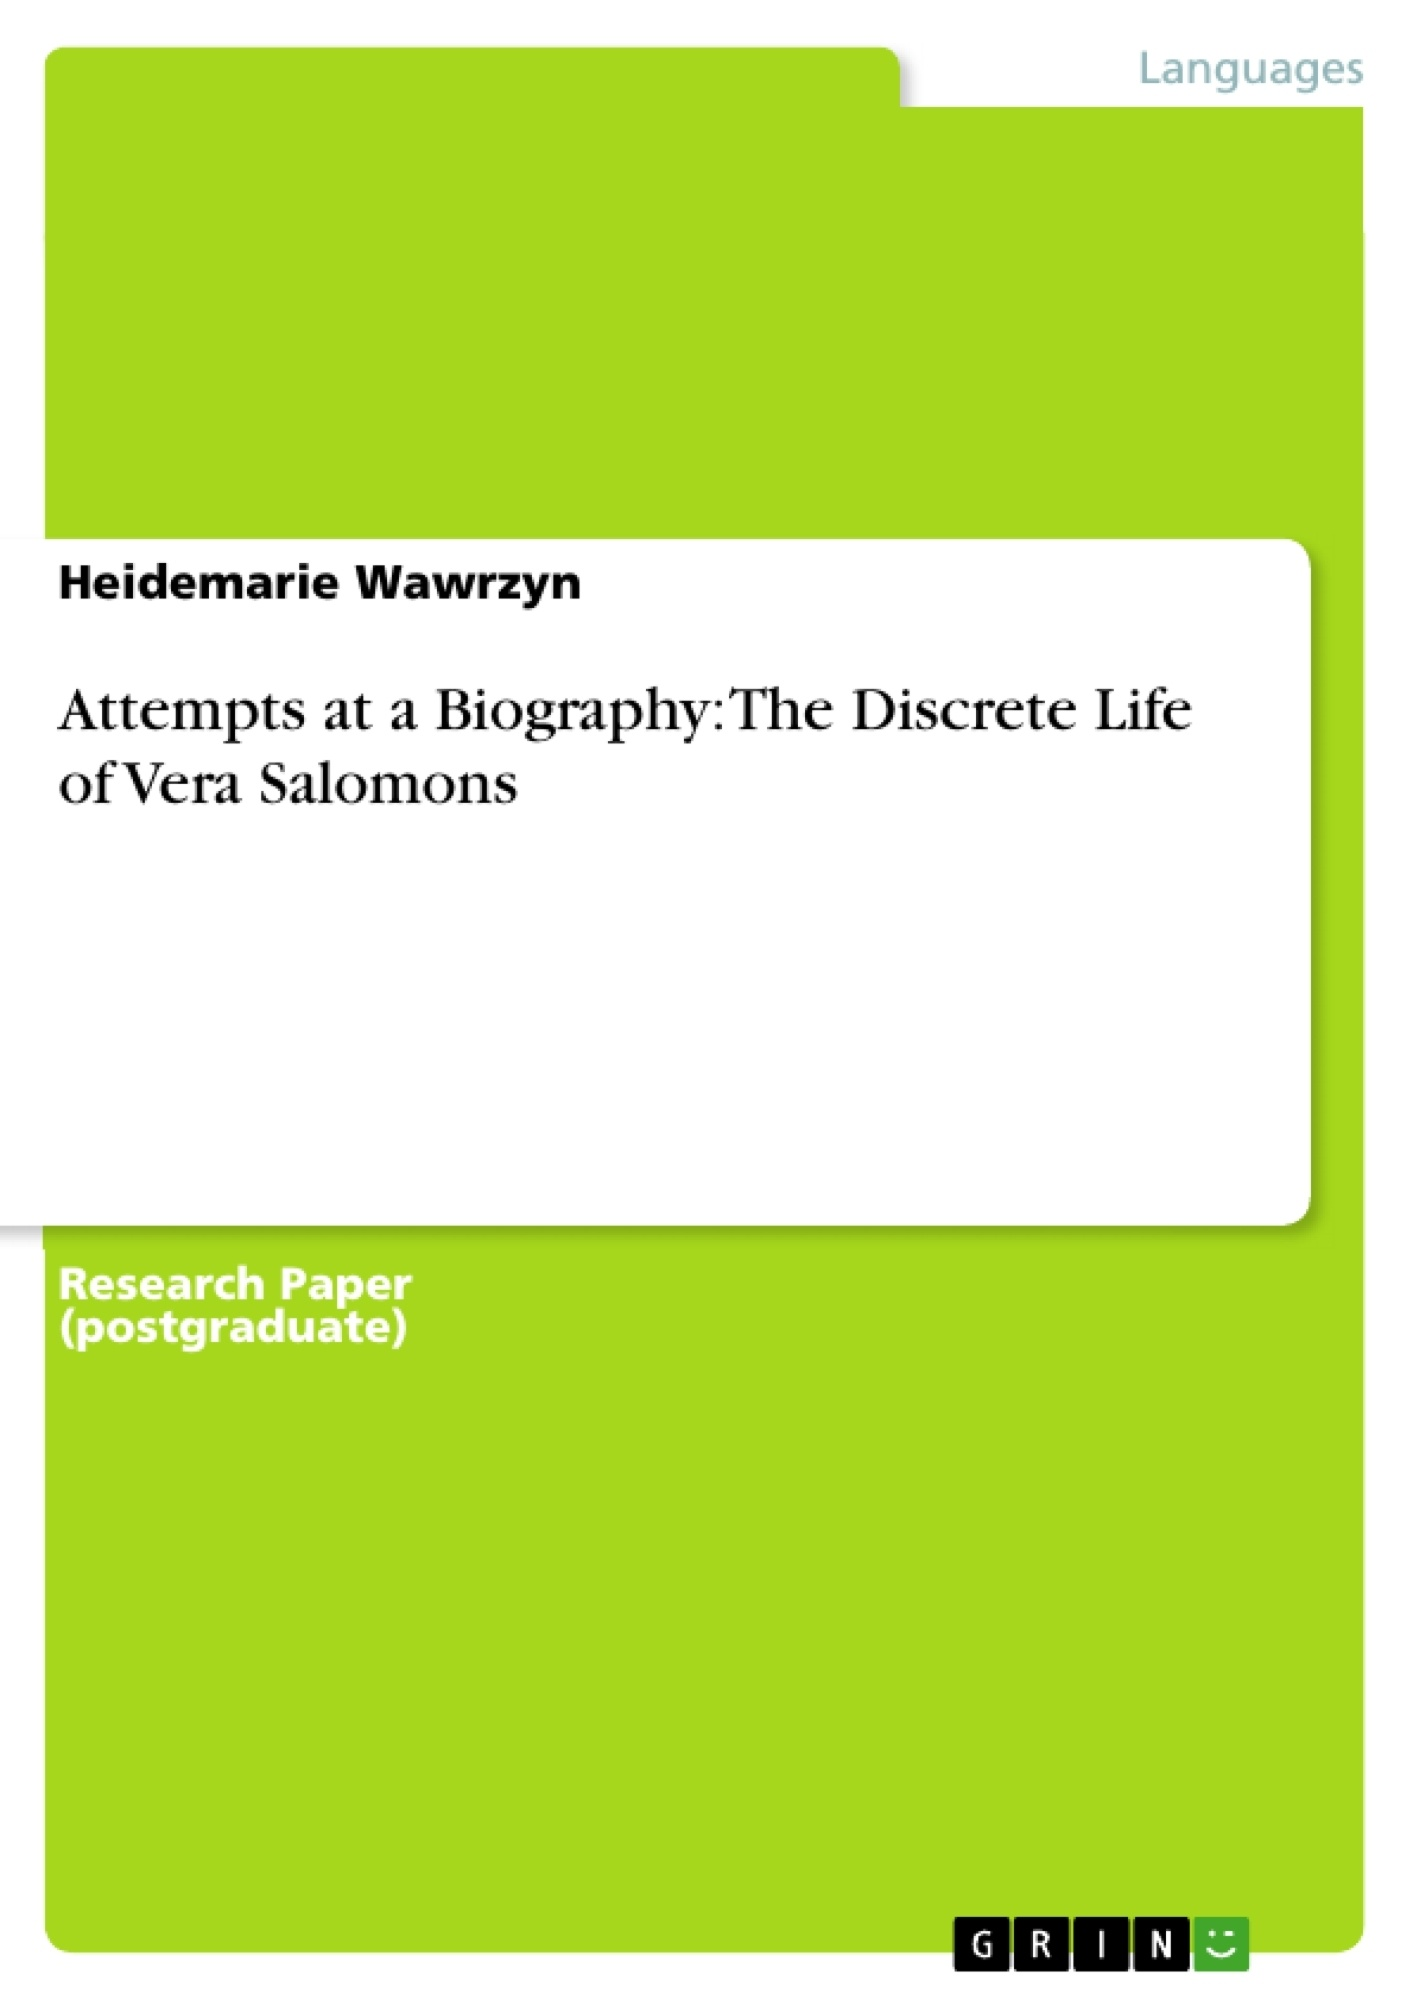 Title: Attempts at a Biography: The Discrete Life of Vera Salomons